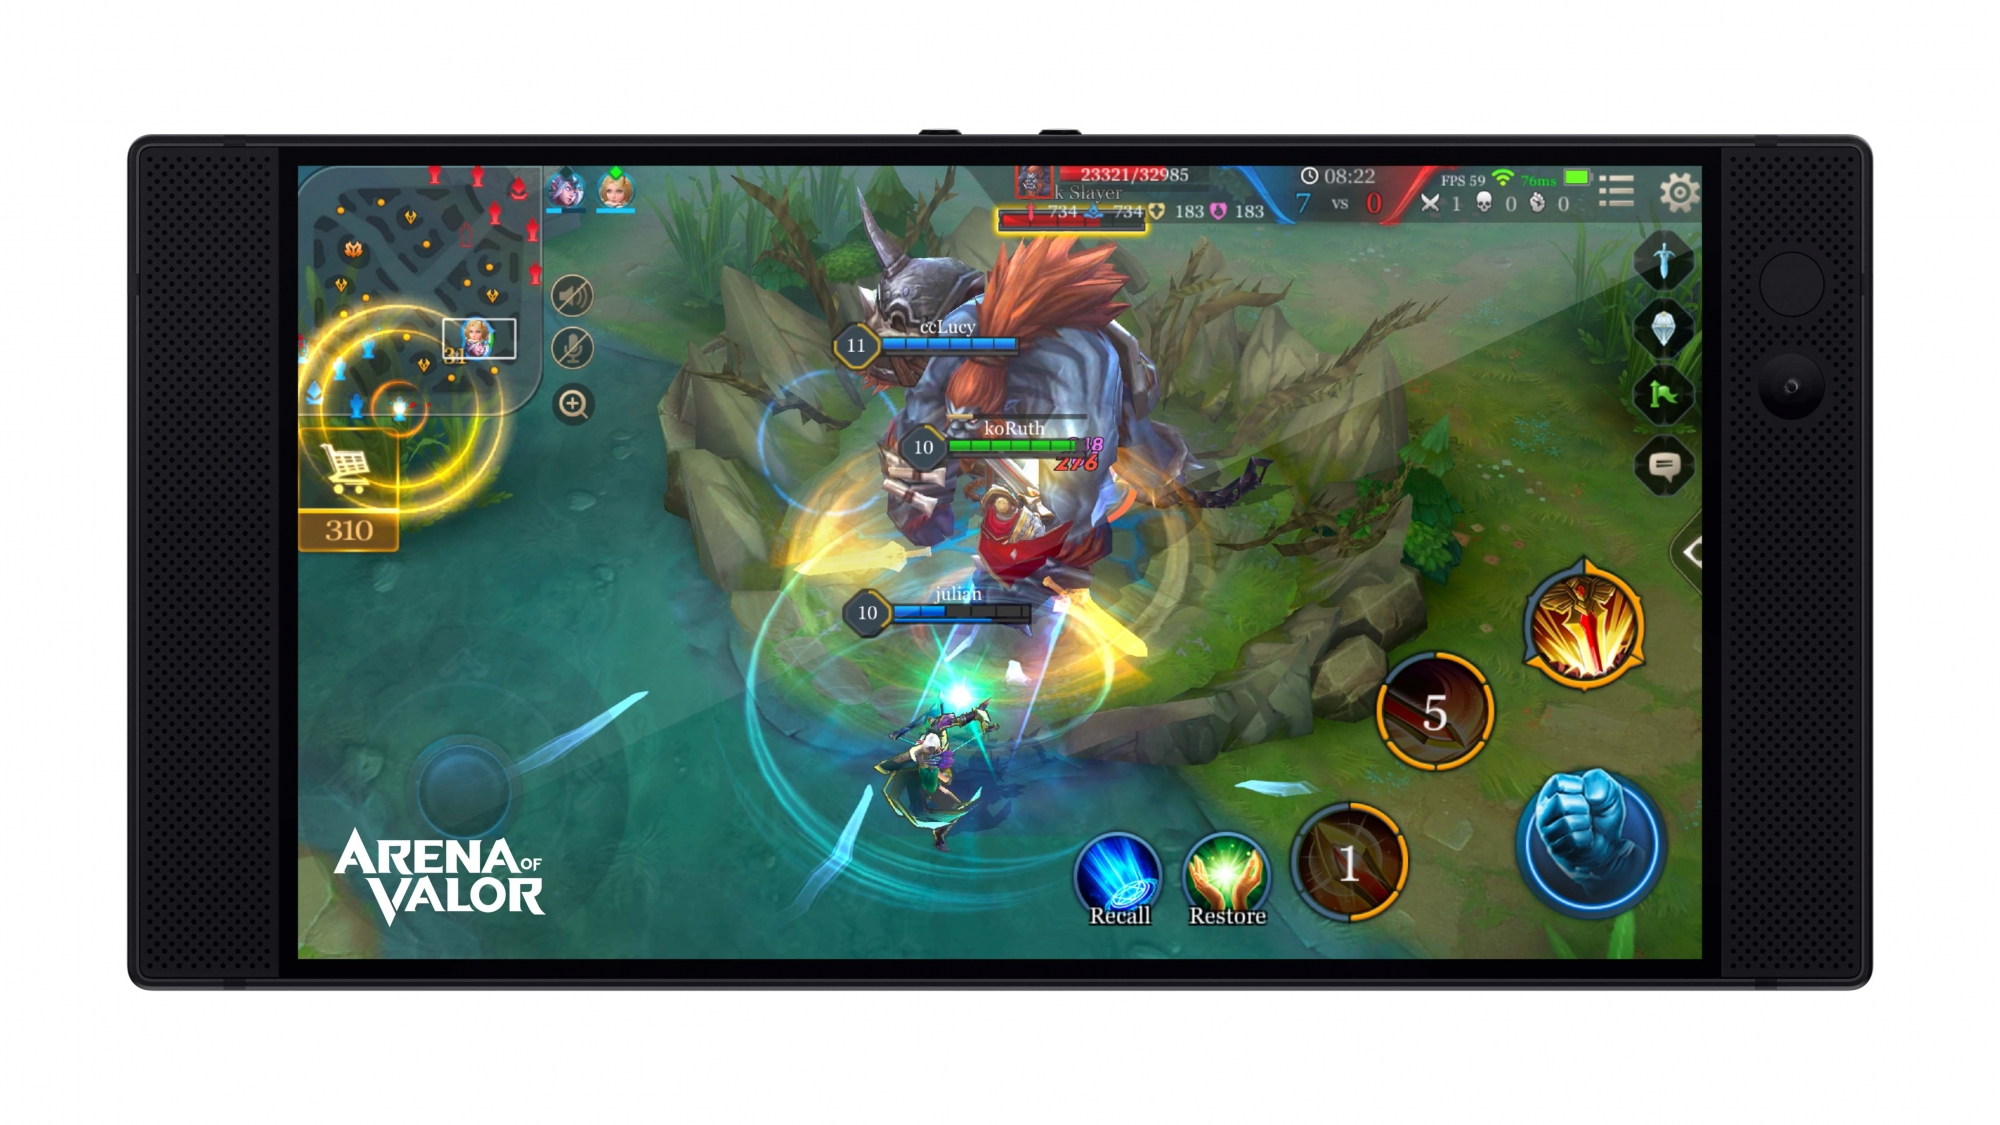 Razer-Phone-Games-Arena-of-Valor-02